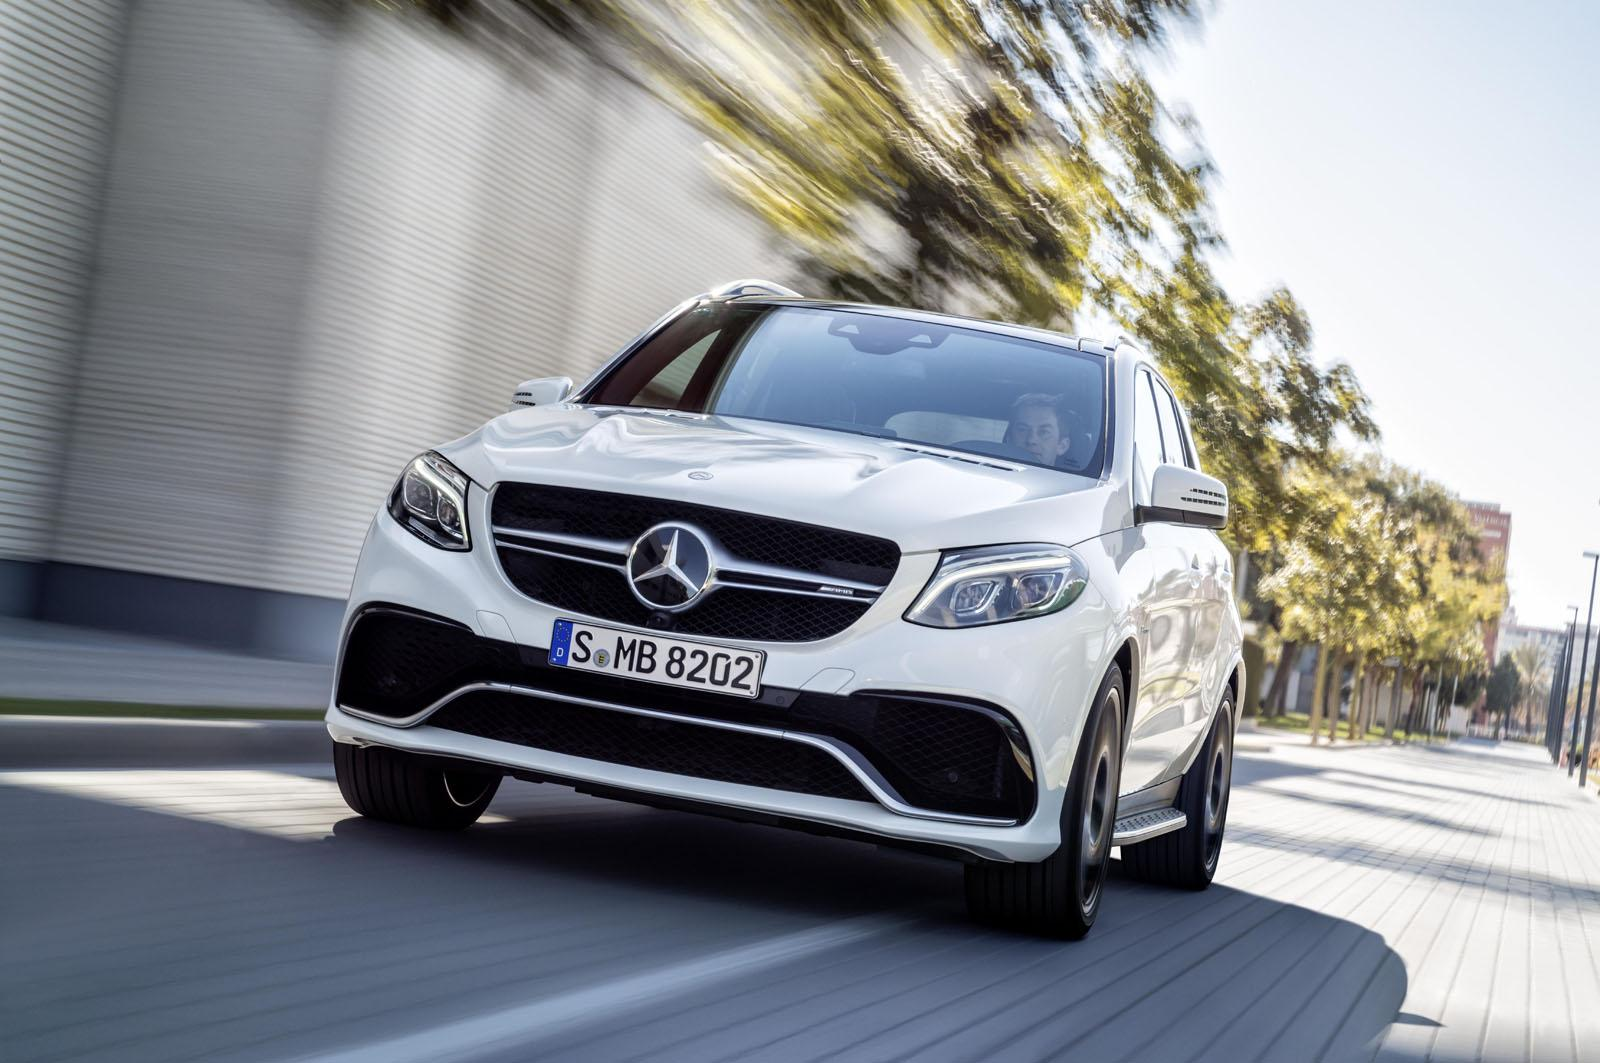 Mercedes GLE 63 AMG official image